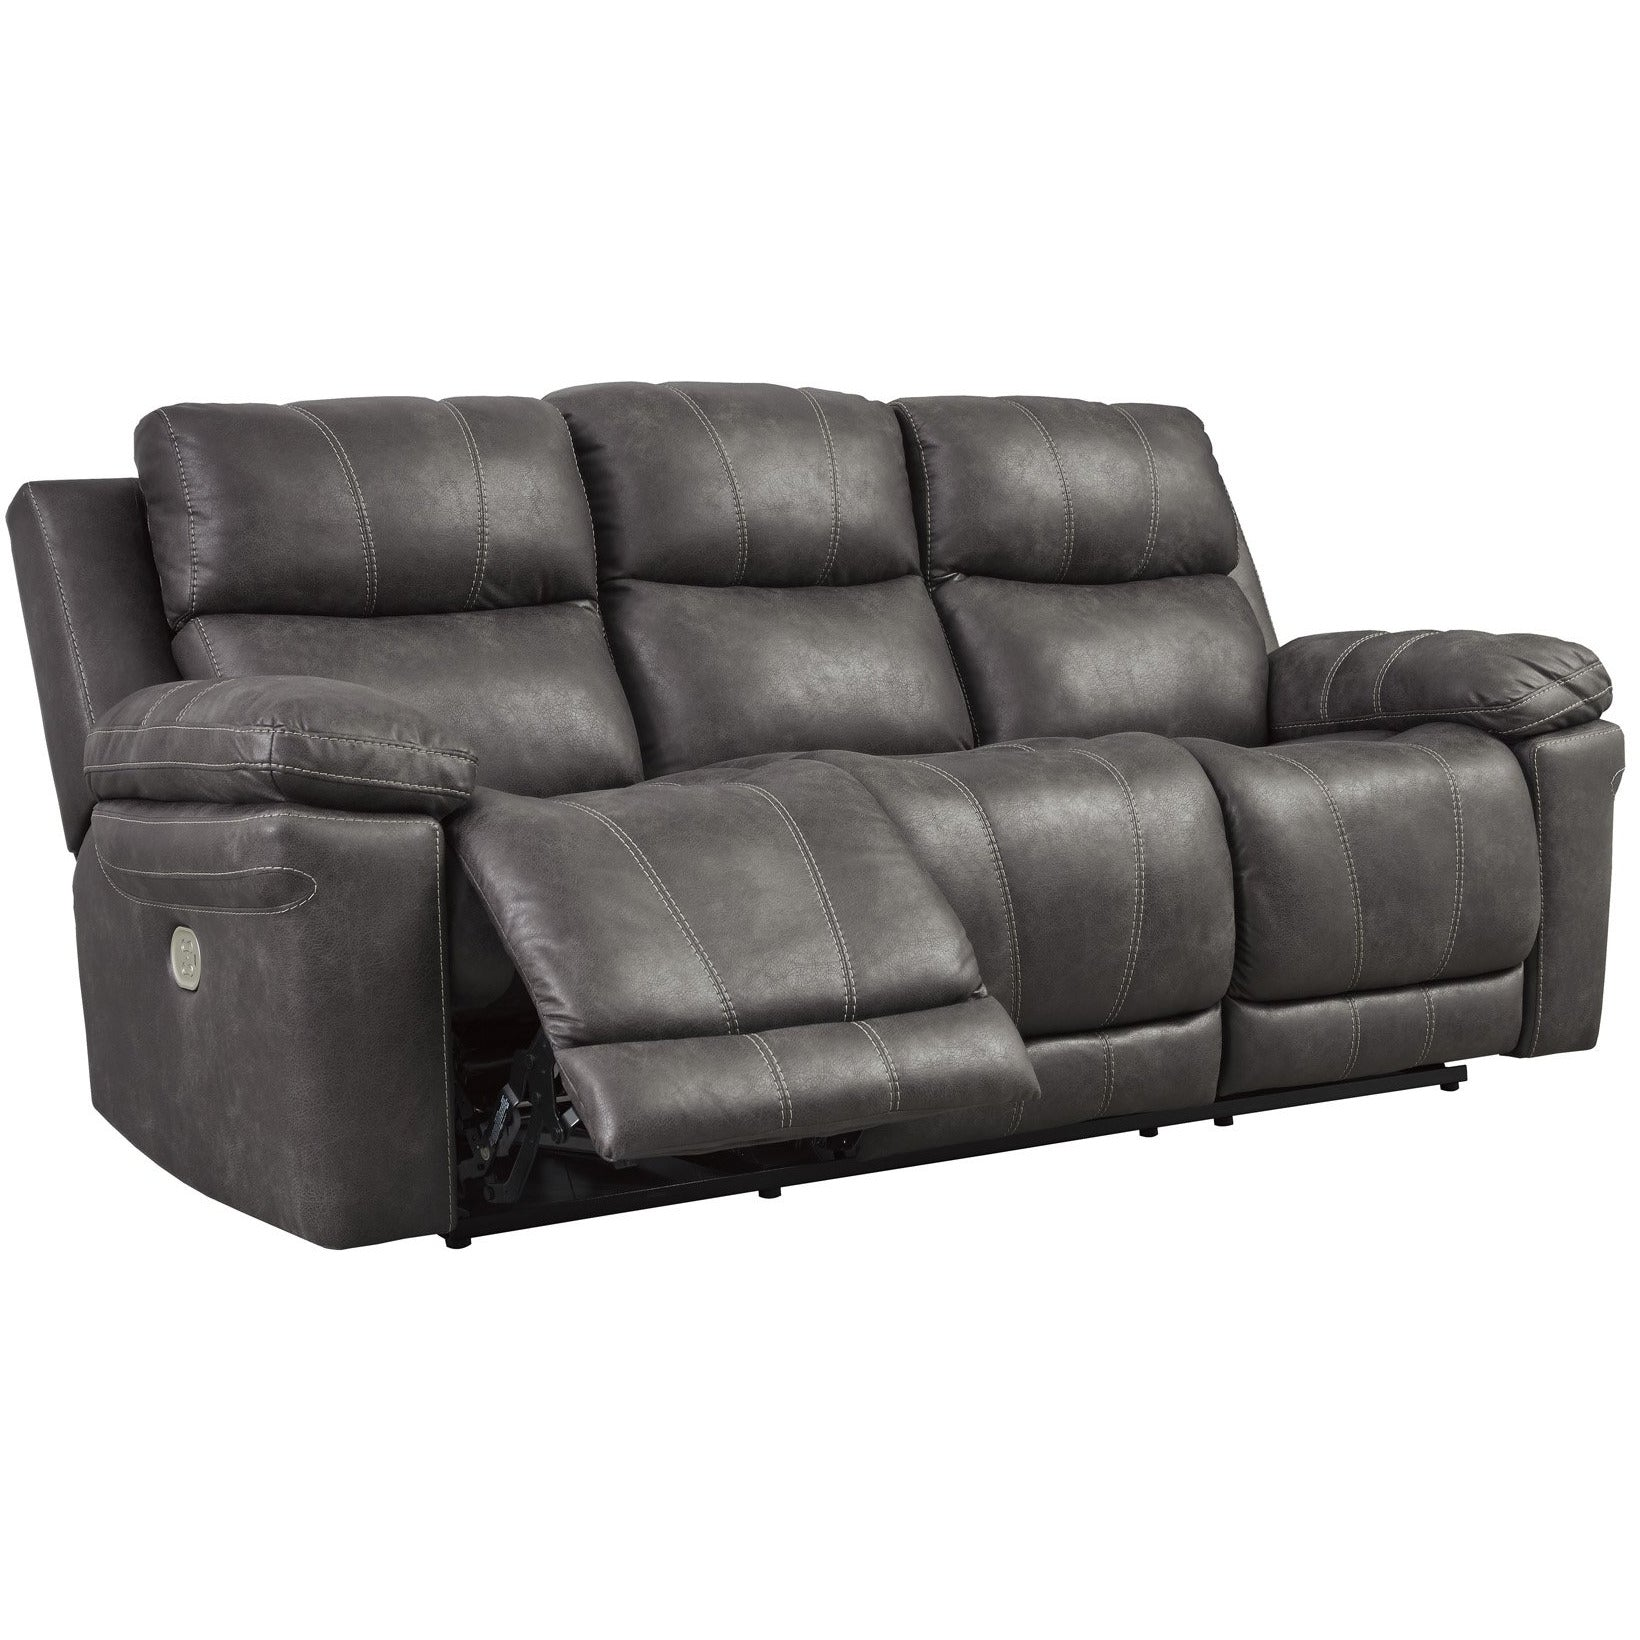 Erlangen Power Sofa